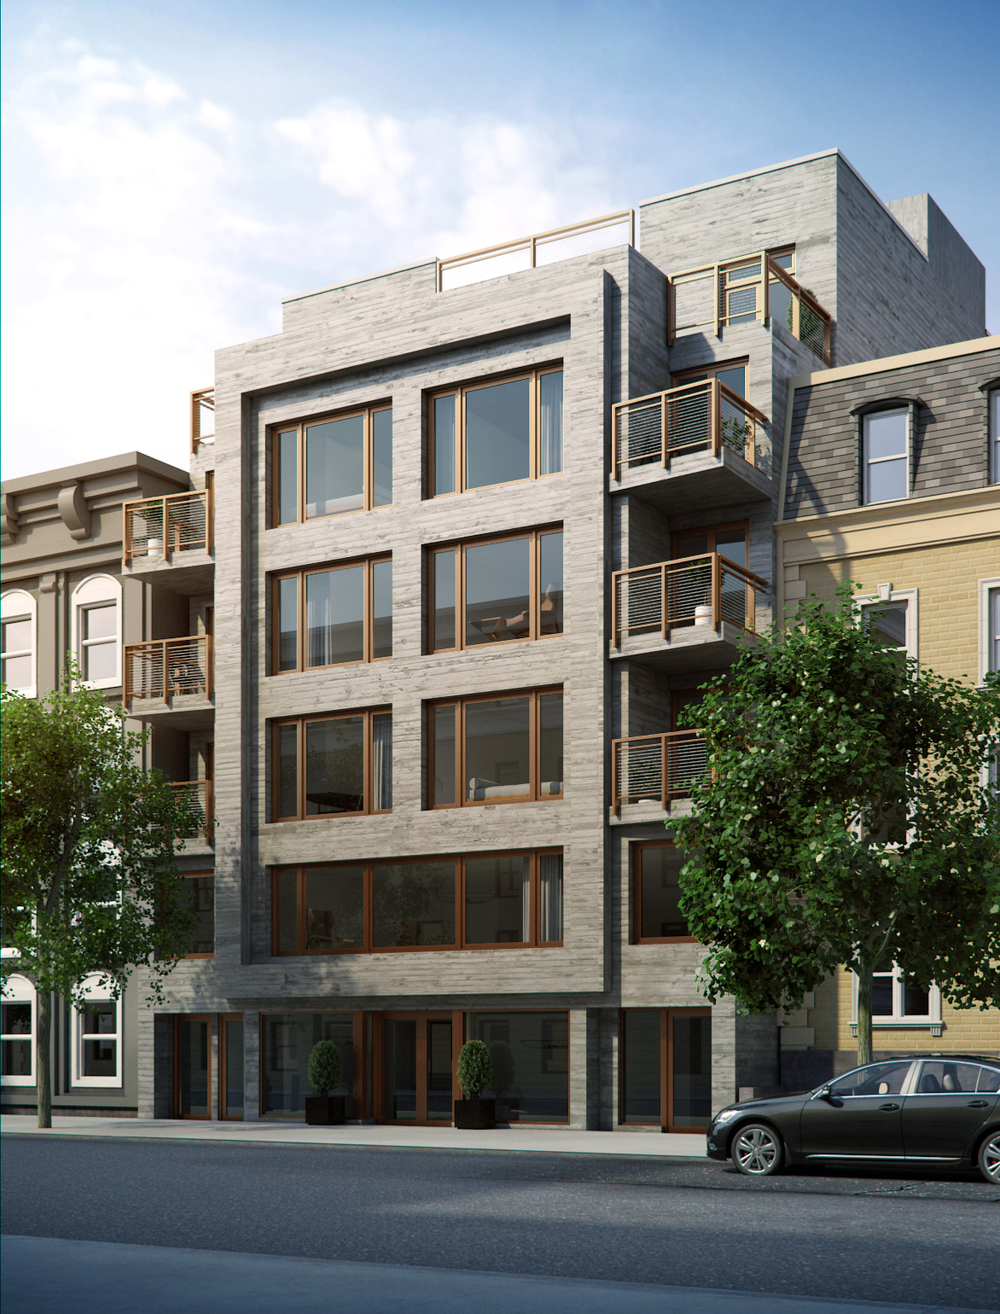 176 Division Avenue, rendering via B+B Capital